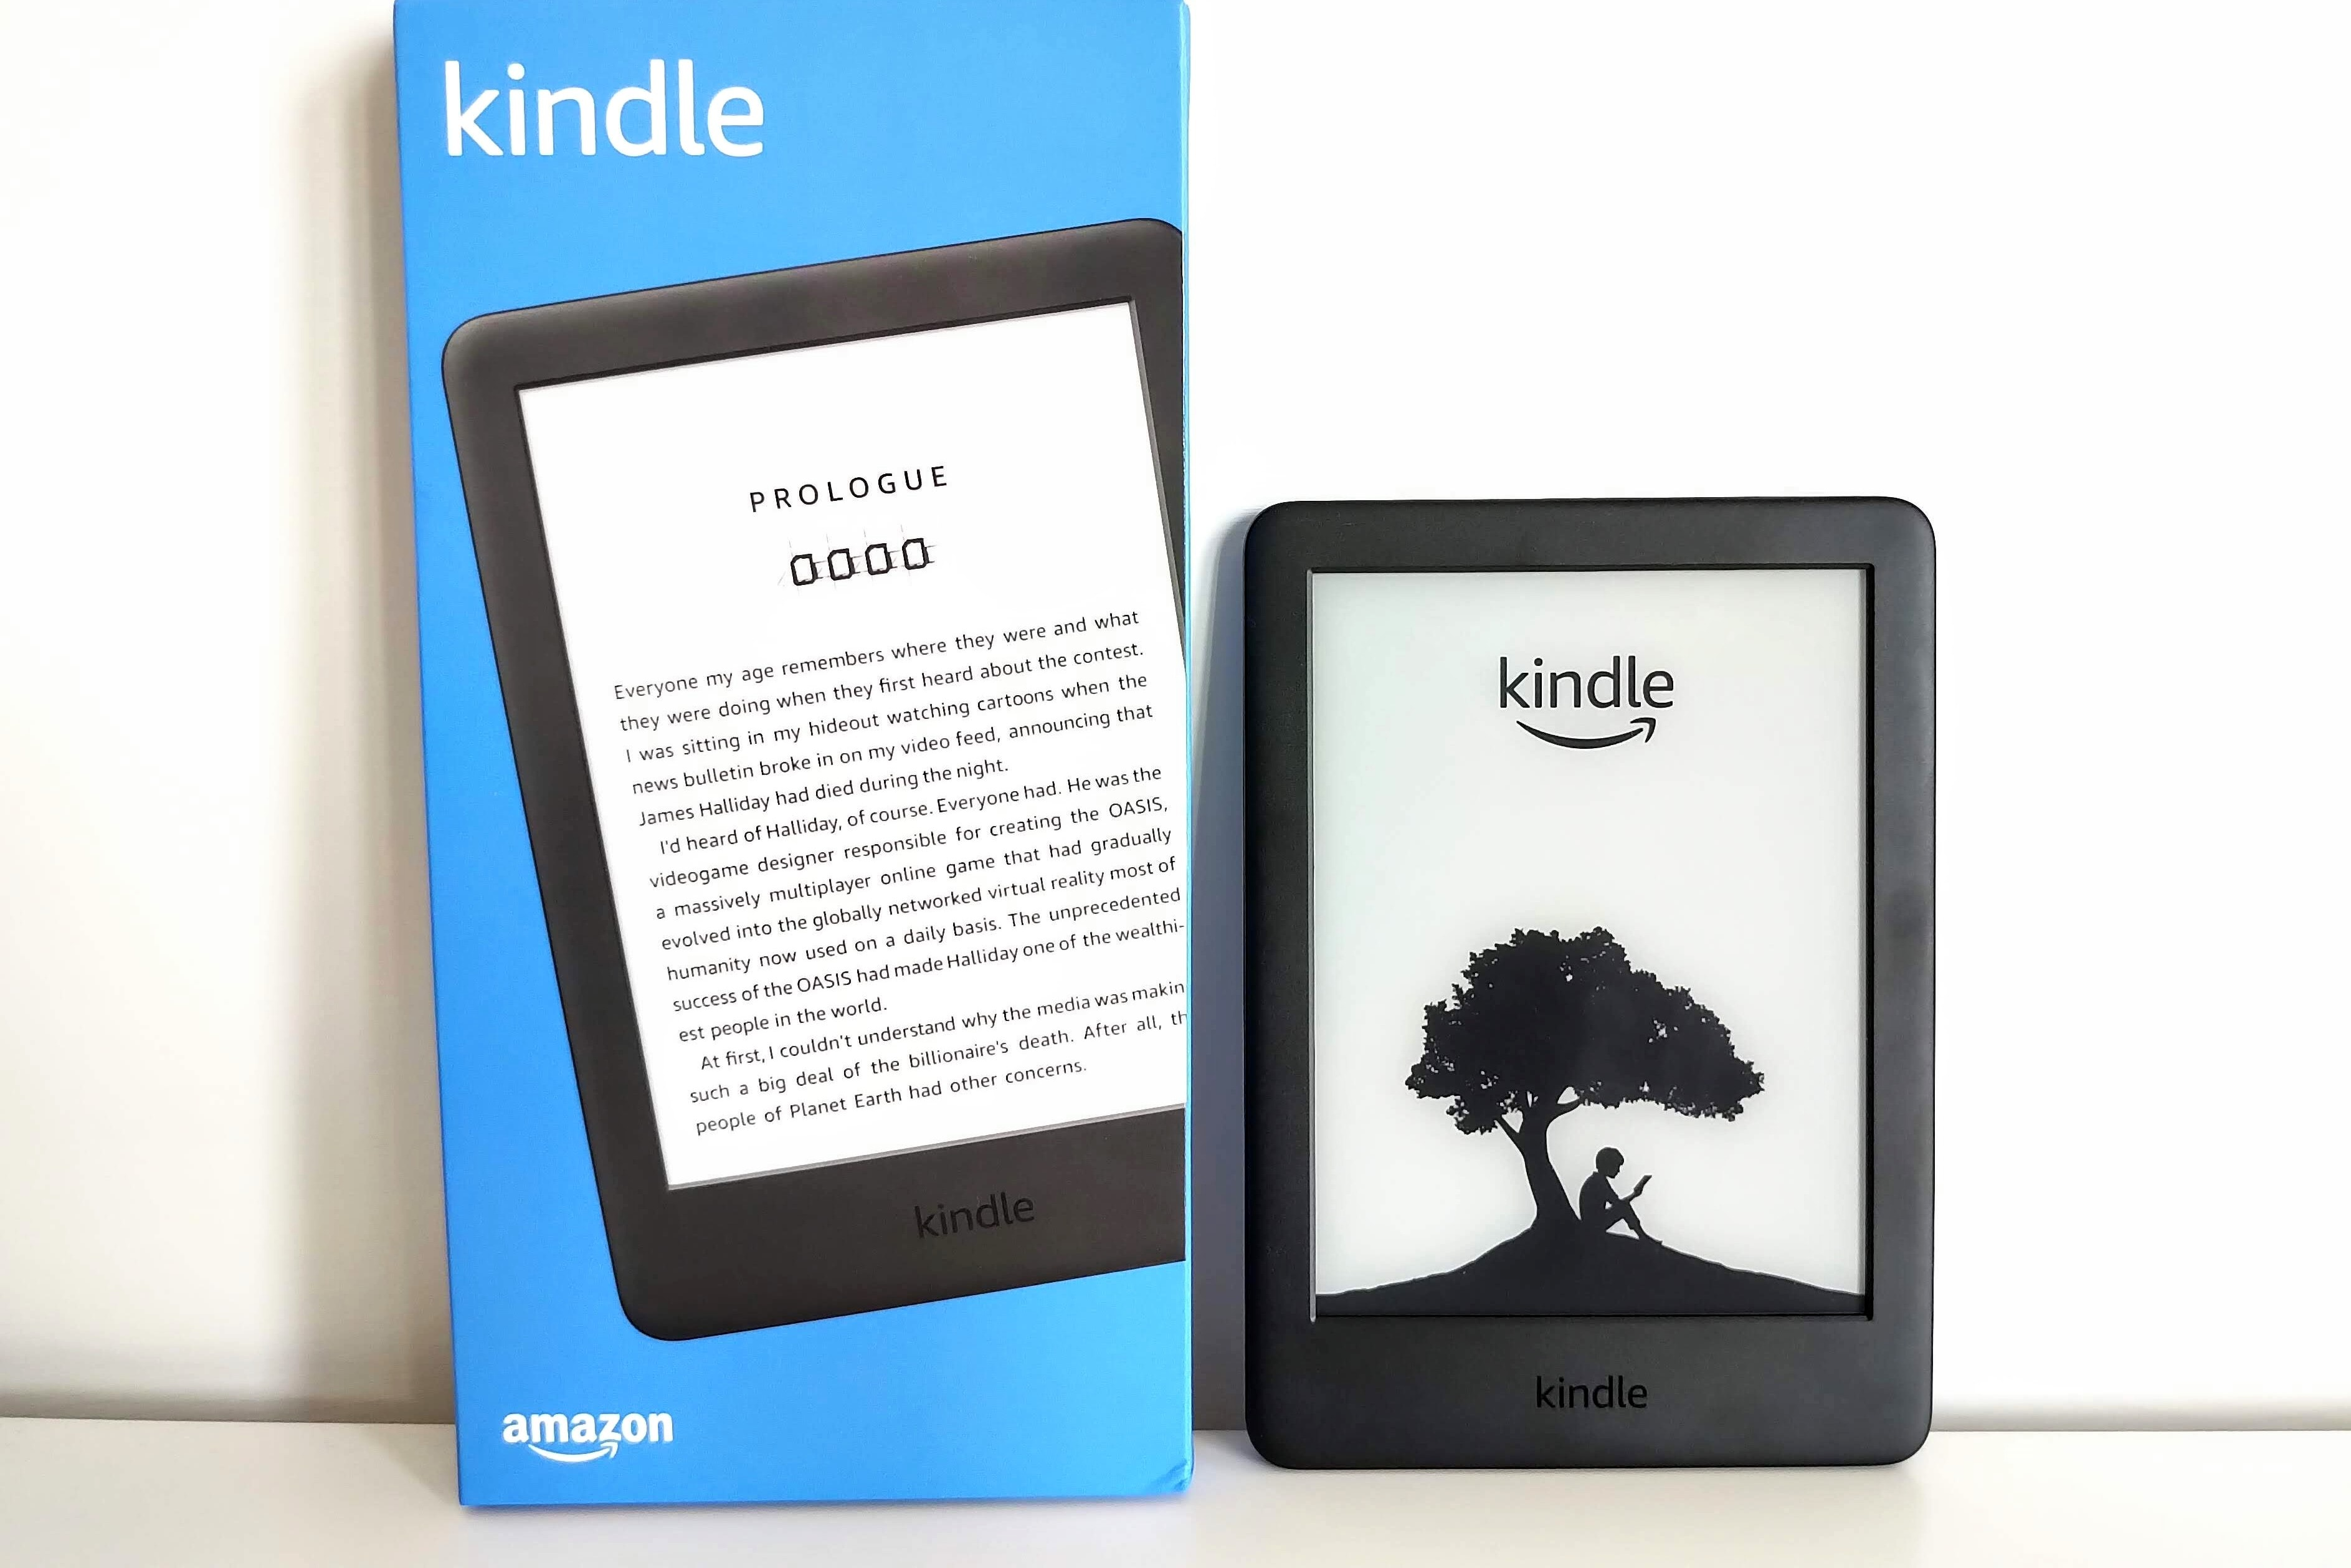 Amazon kindle la recensione del nuovo ebook reader